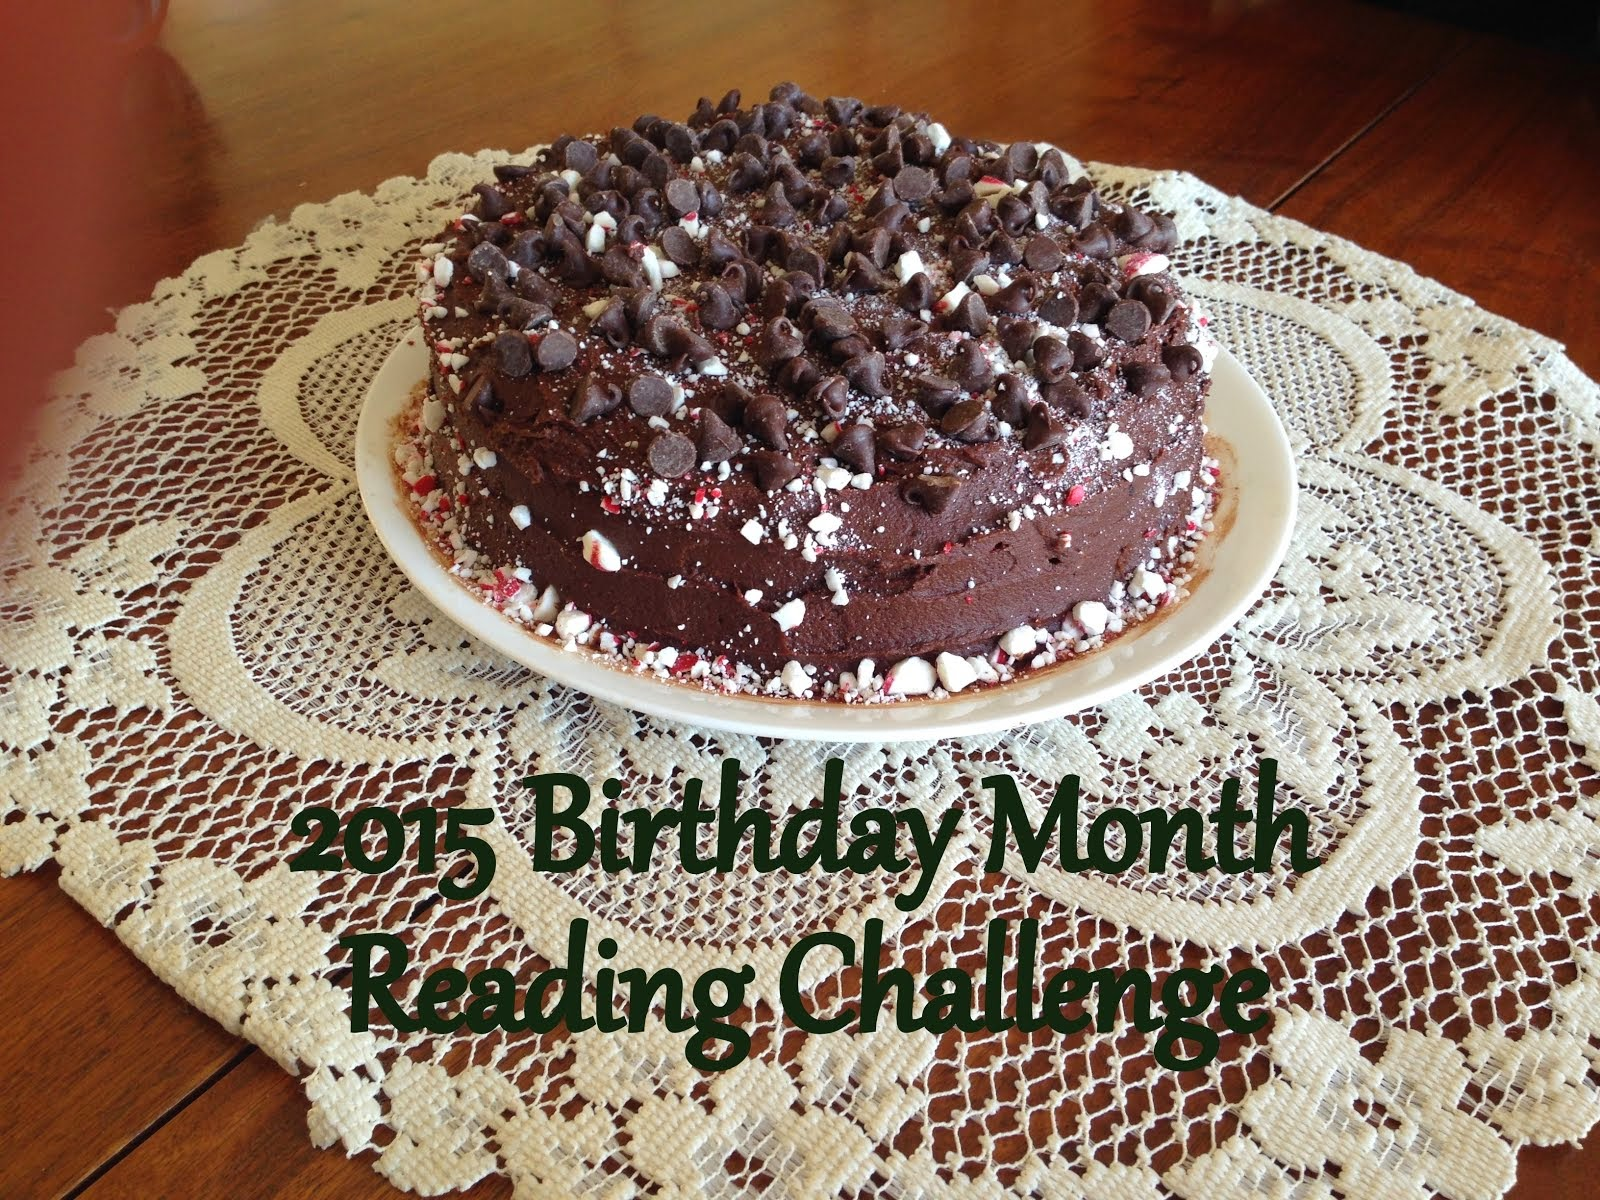 Sign up for the 2015 Birthday Month Reading Challenge!